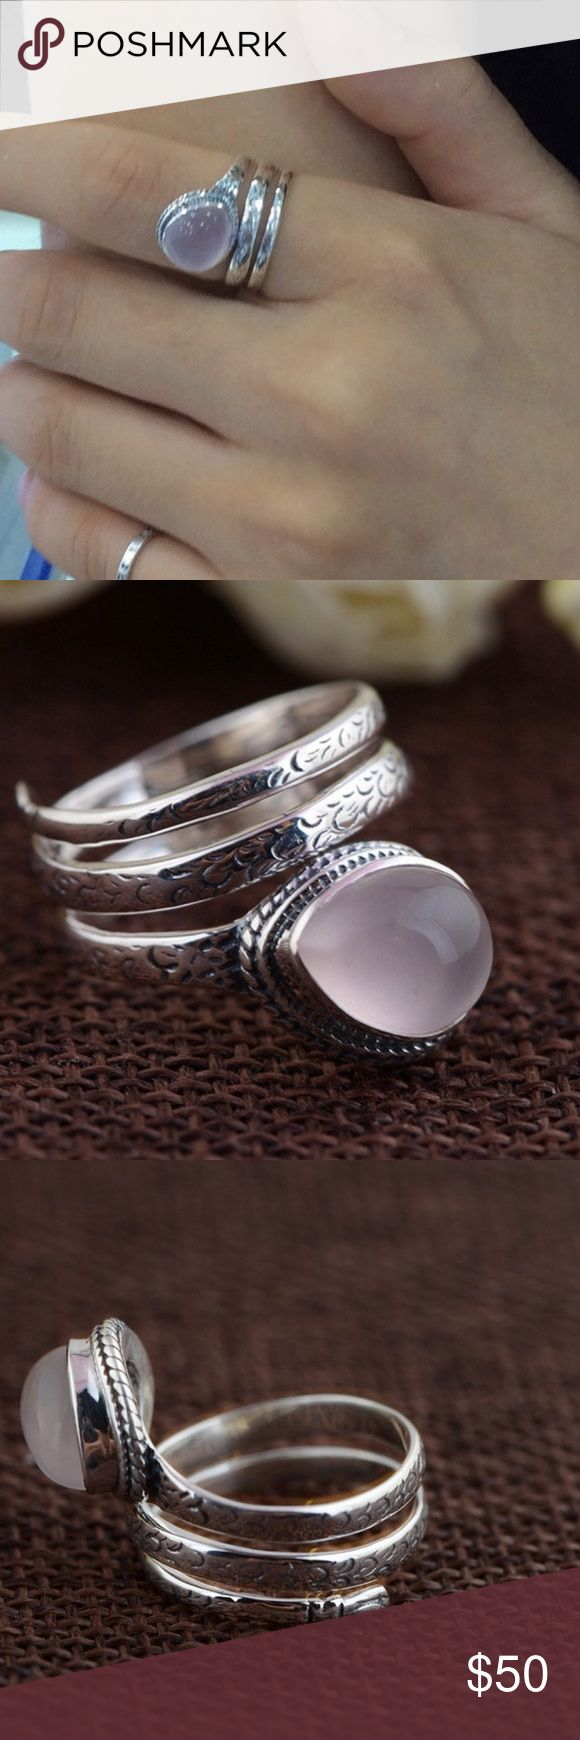 Thai Rose Quartz Silver Ring 925 Sterling Silver Rose Quartz Natural Semi Precious Stone Ring in tension setting 4.6G Jewelry Rings